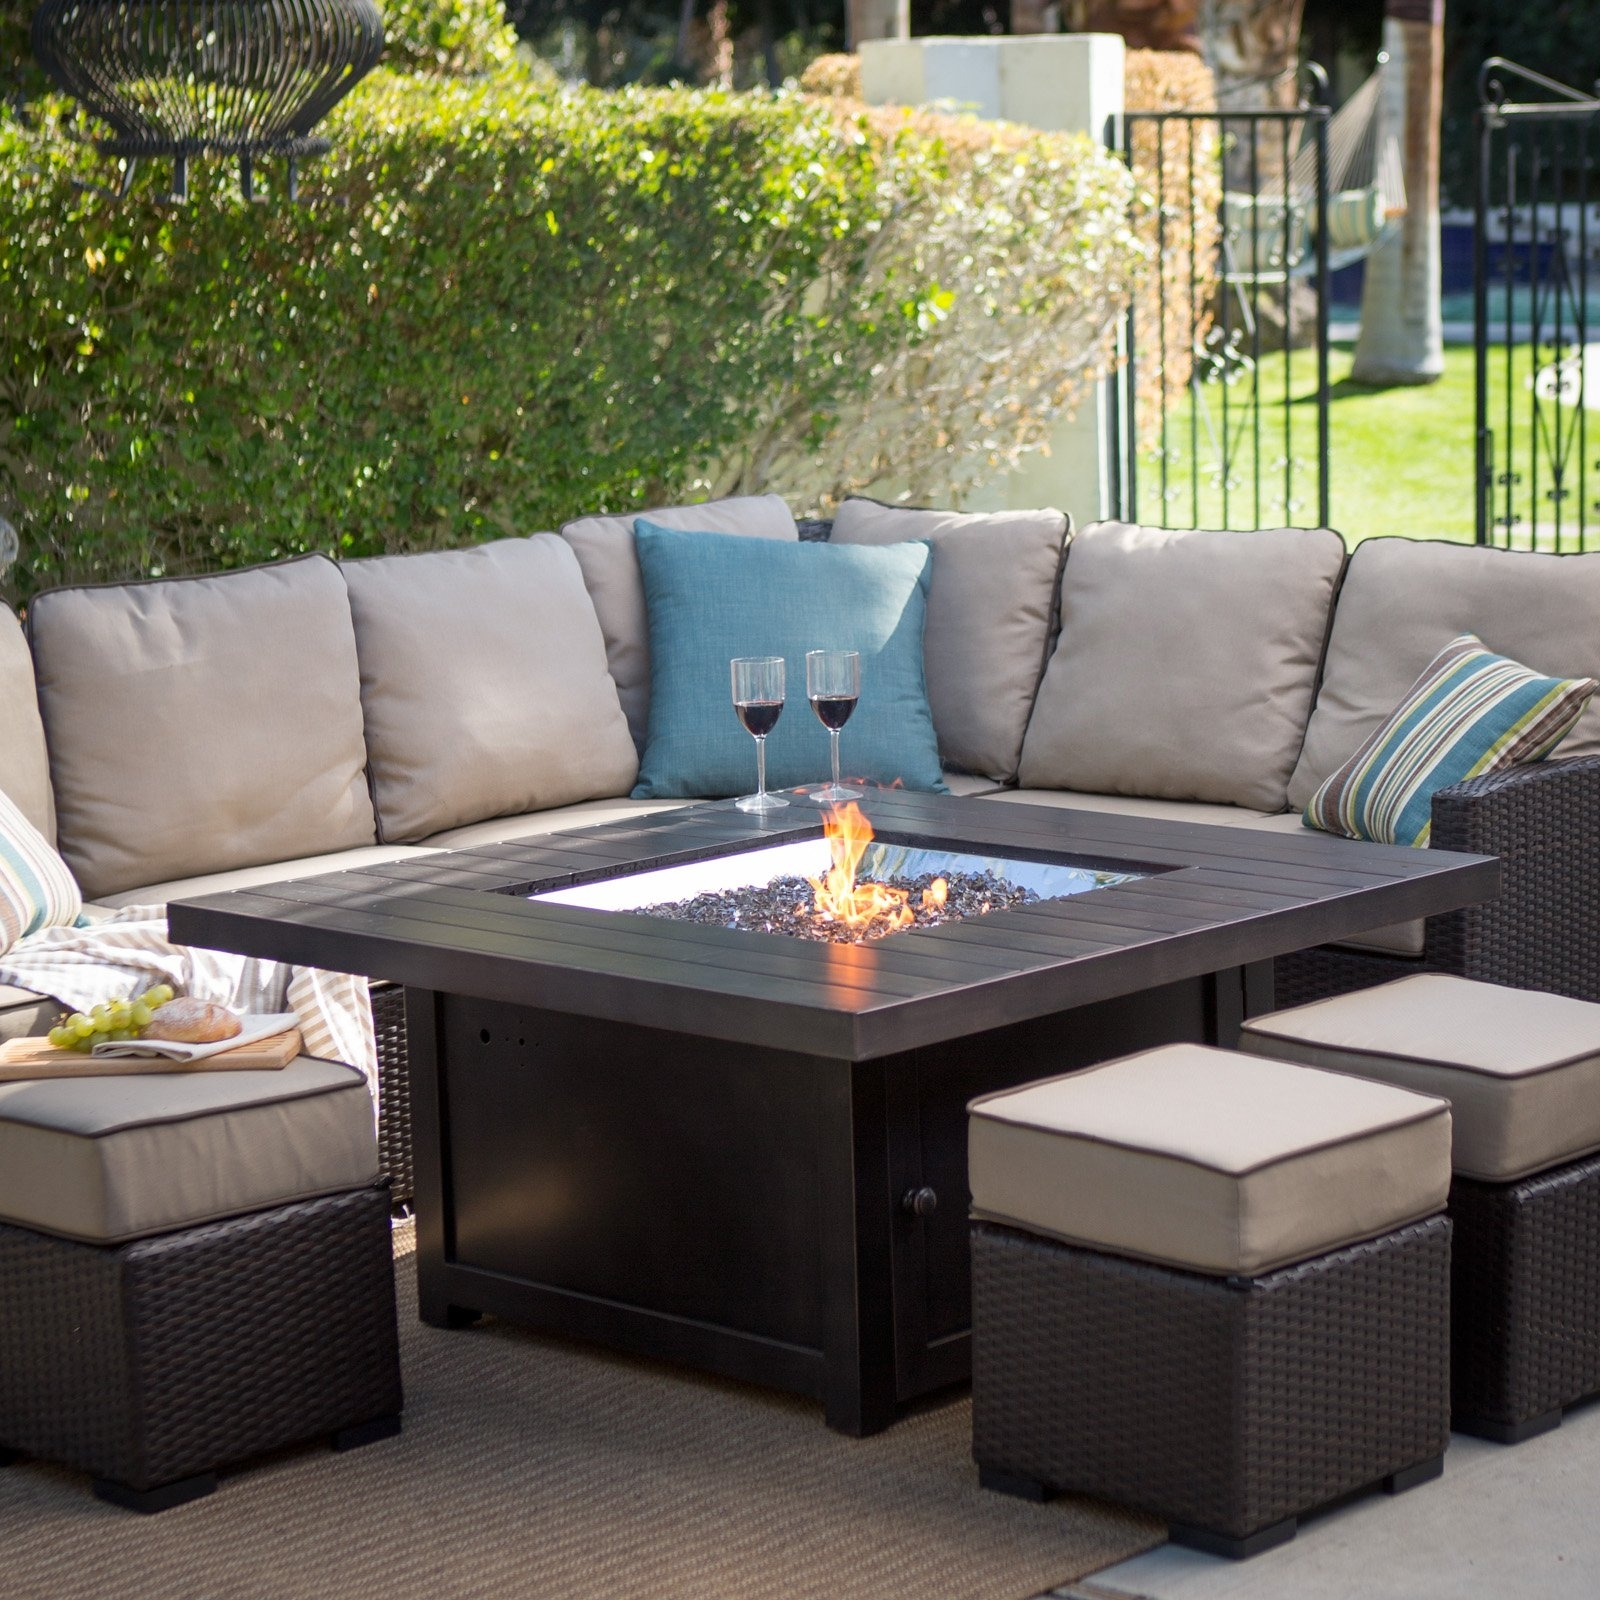 2017 Patio Conversation Sets With Fire Pit For Furniture: High Quality Patio Furniture Columbus Ohio And Fire Pit (View 6 of 15)